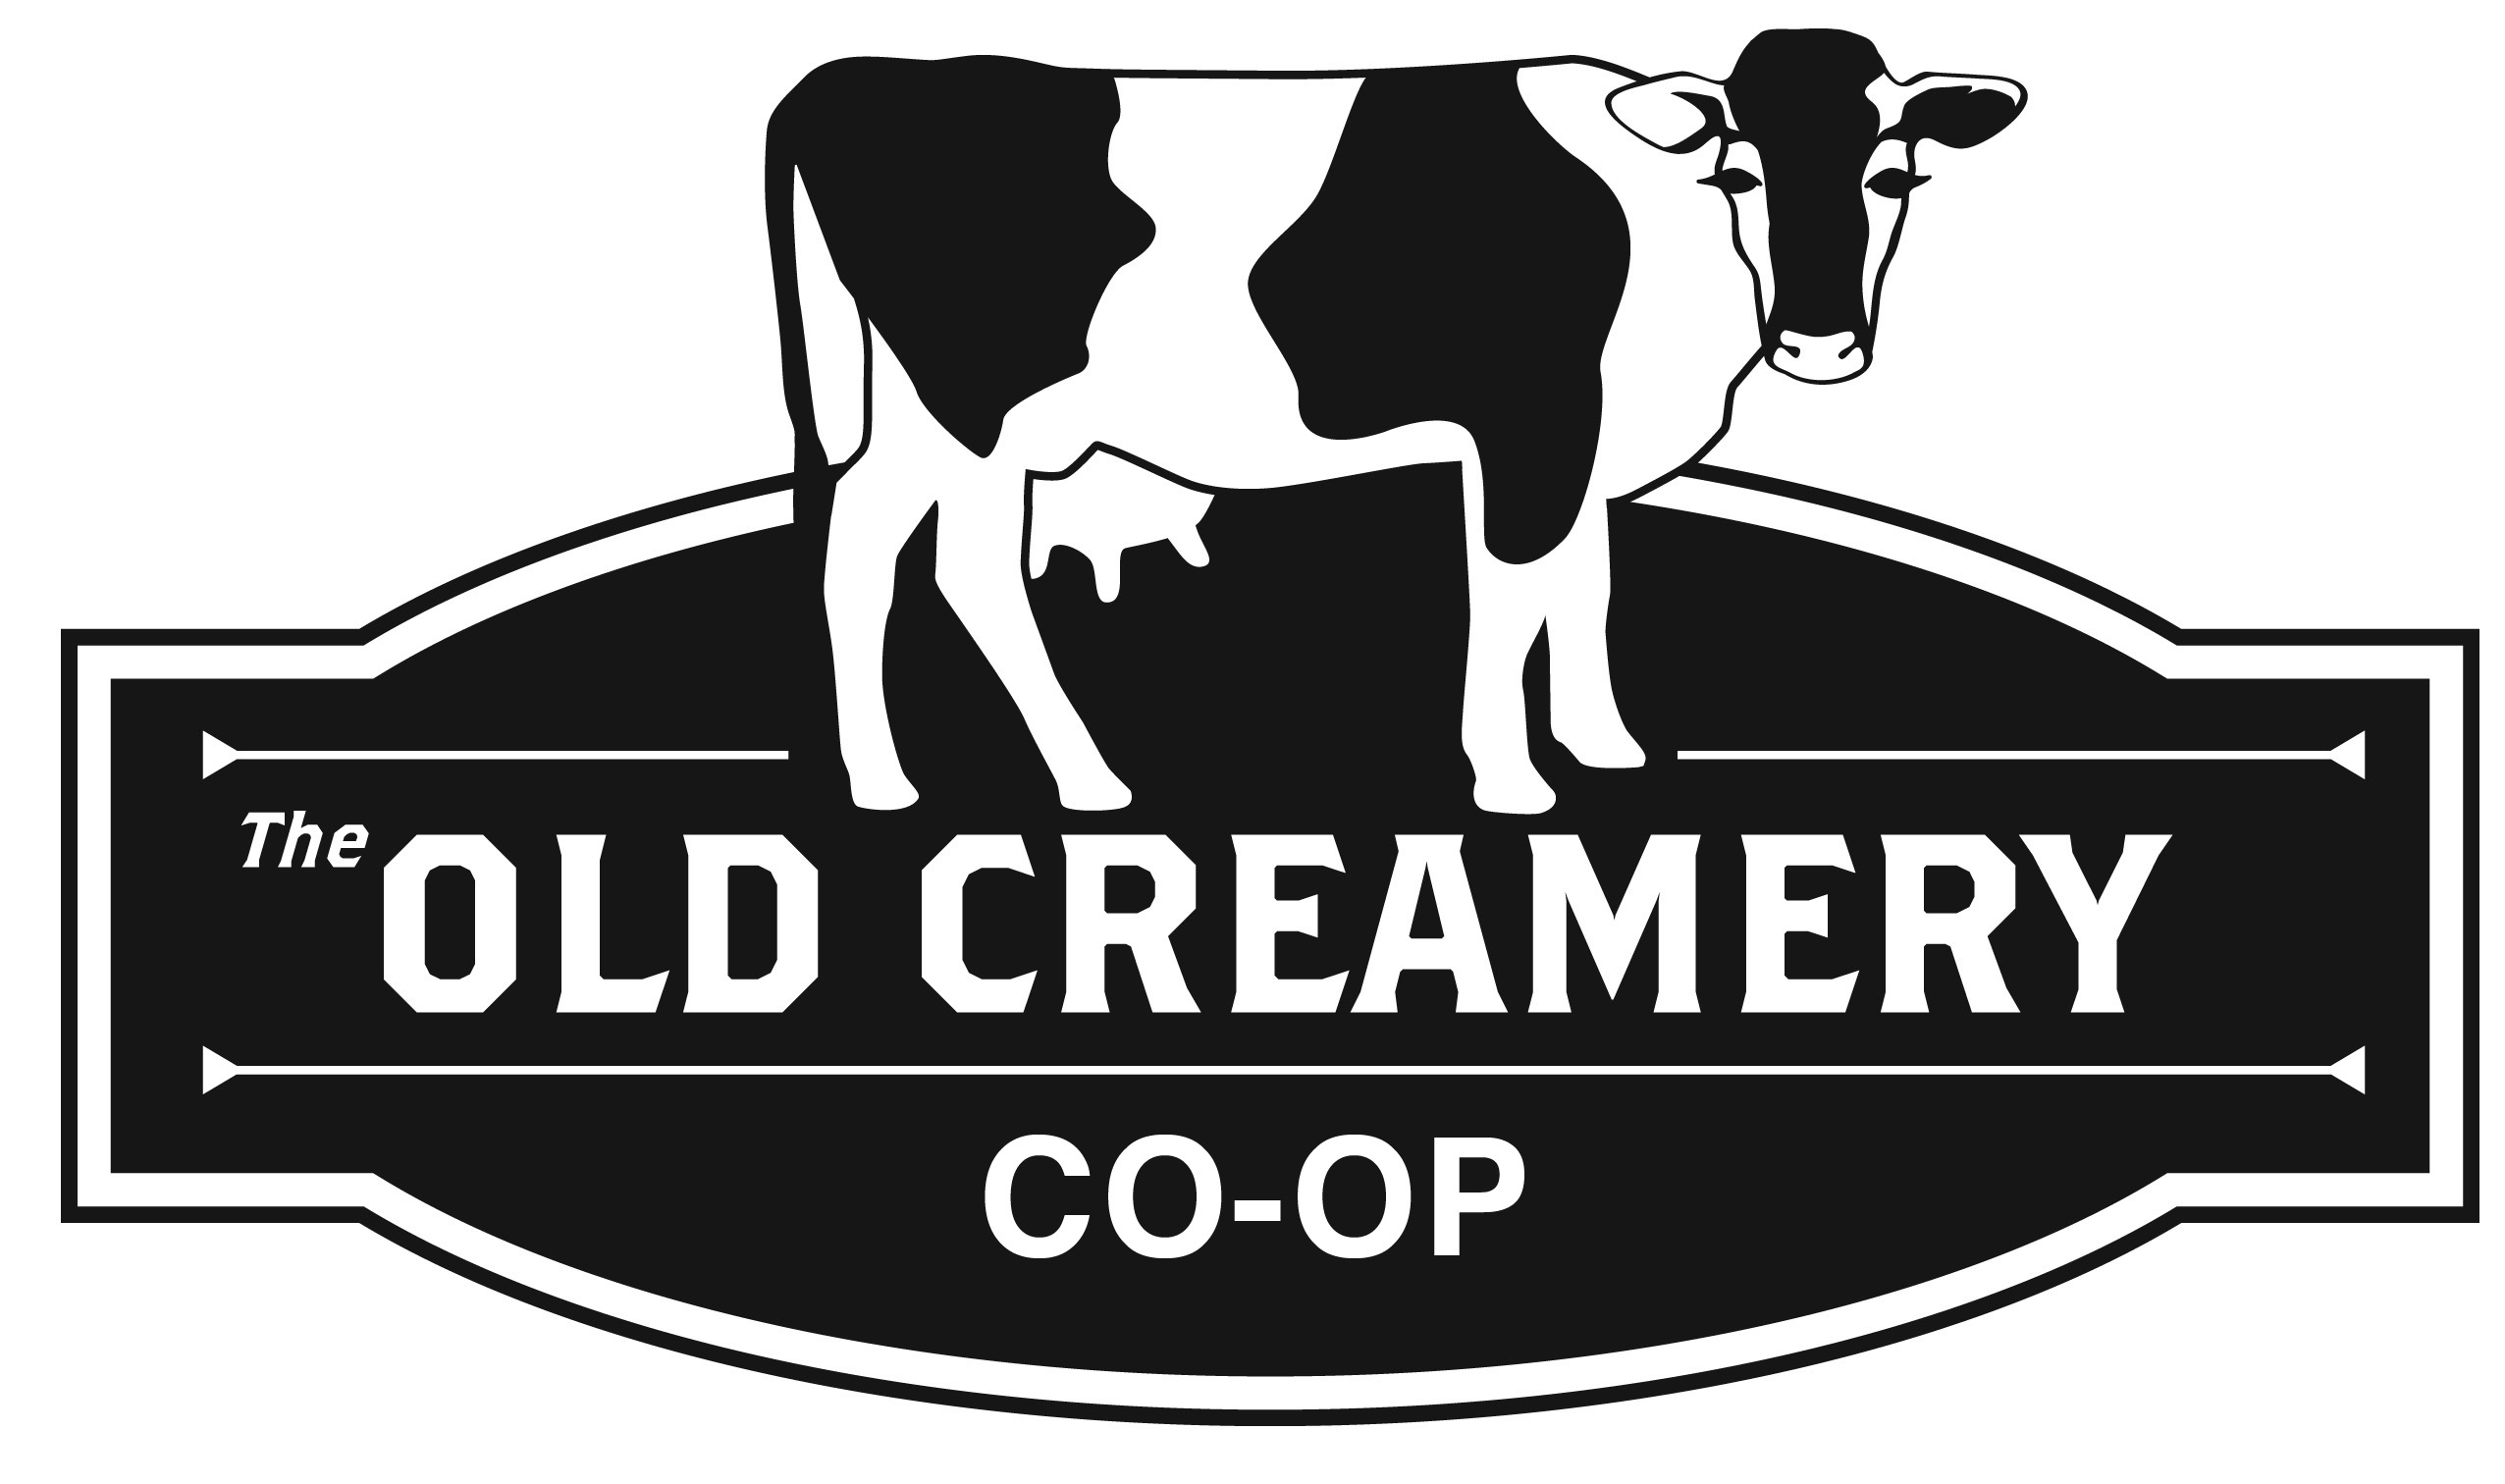 Old Creamery Co-op